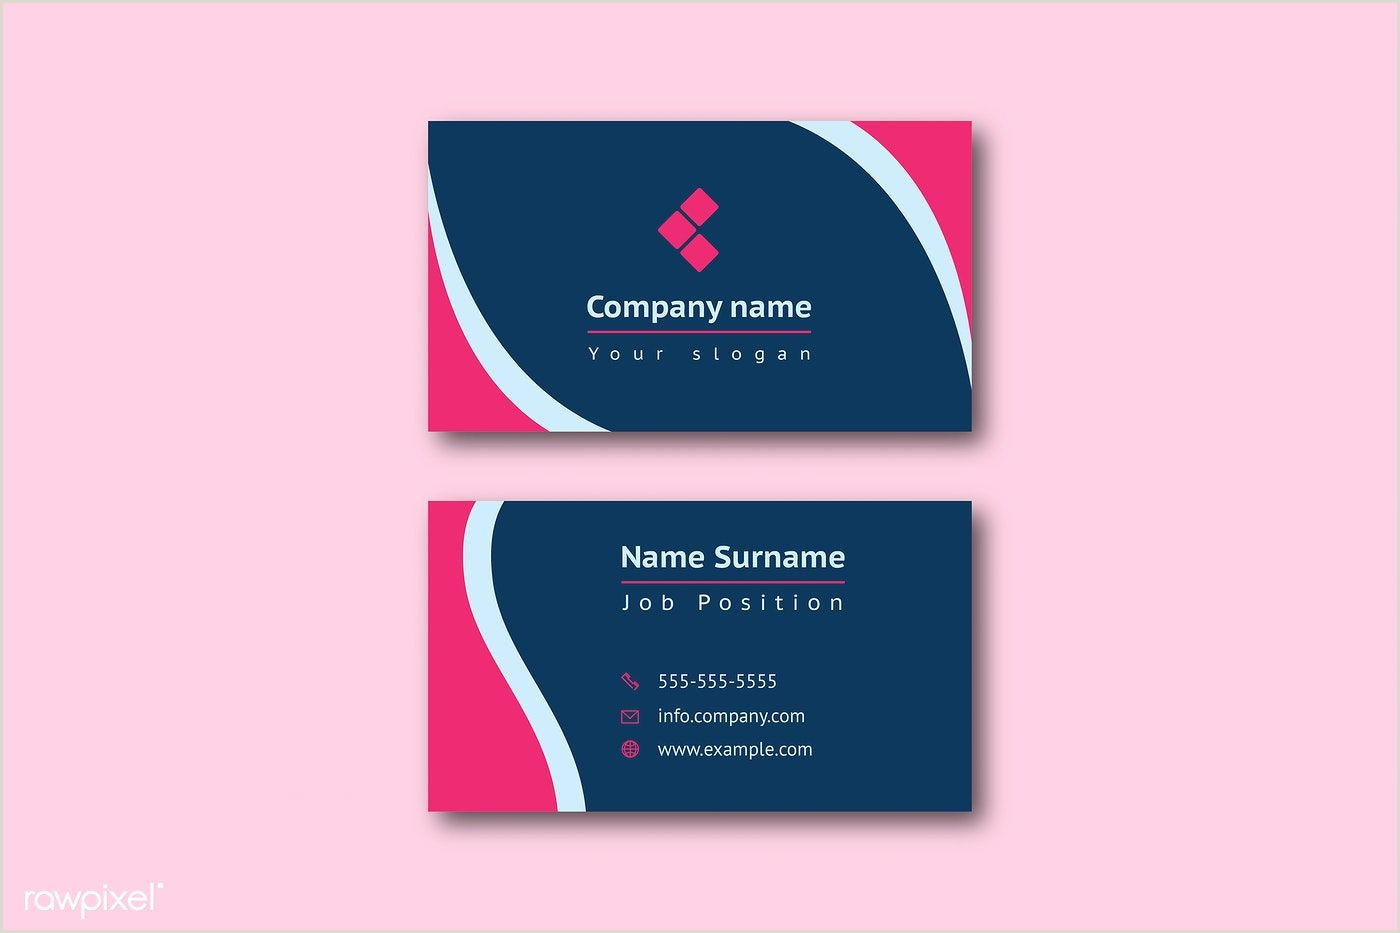 Business Card Template Front And Back Pin On Corporate Identity & Stationery Mockups